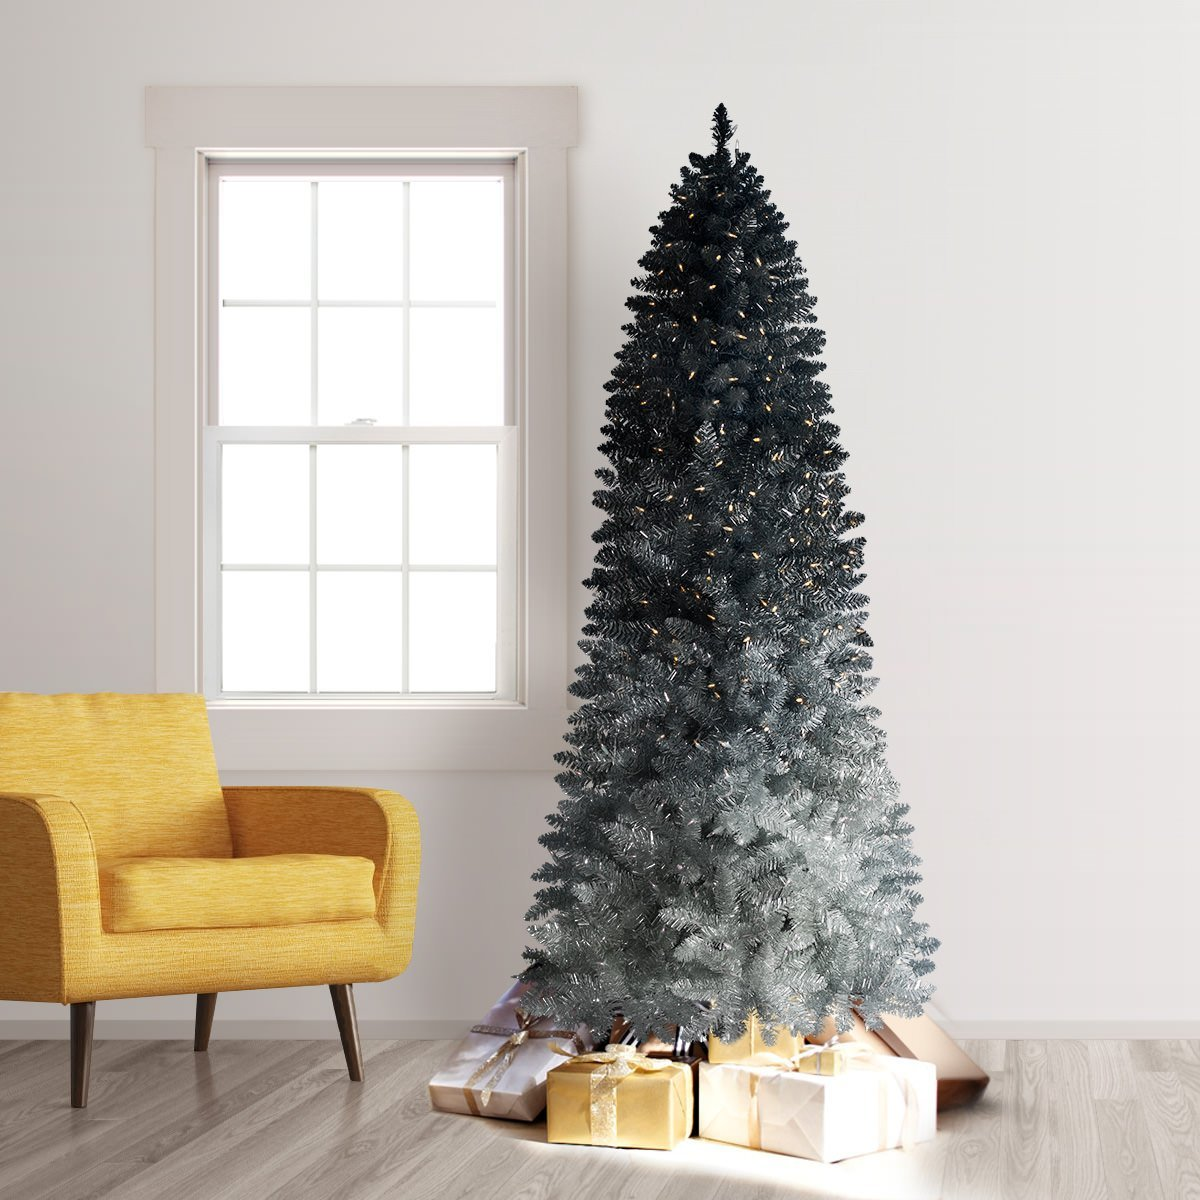 4 Ombré Christmas Trees To Light Up Your Holiday